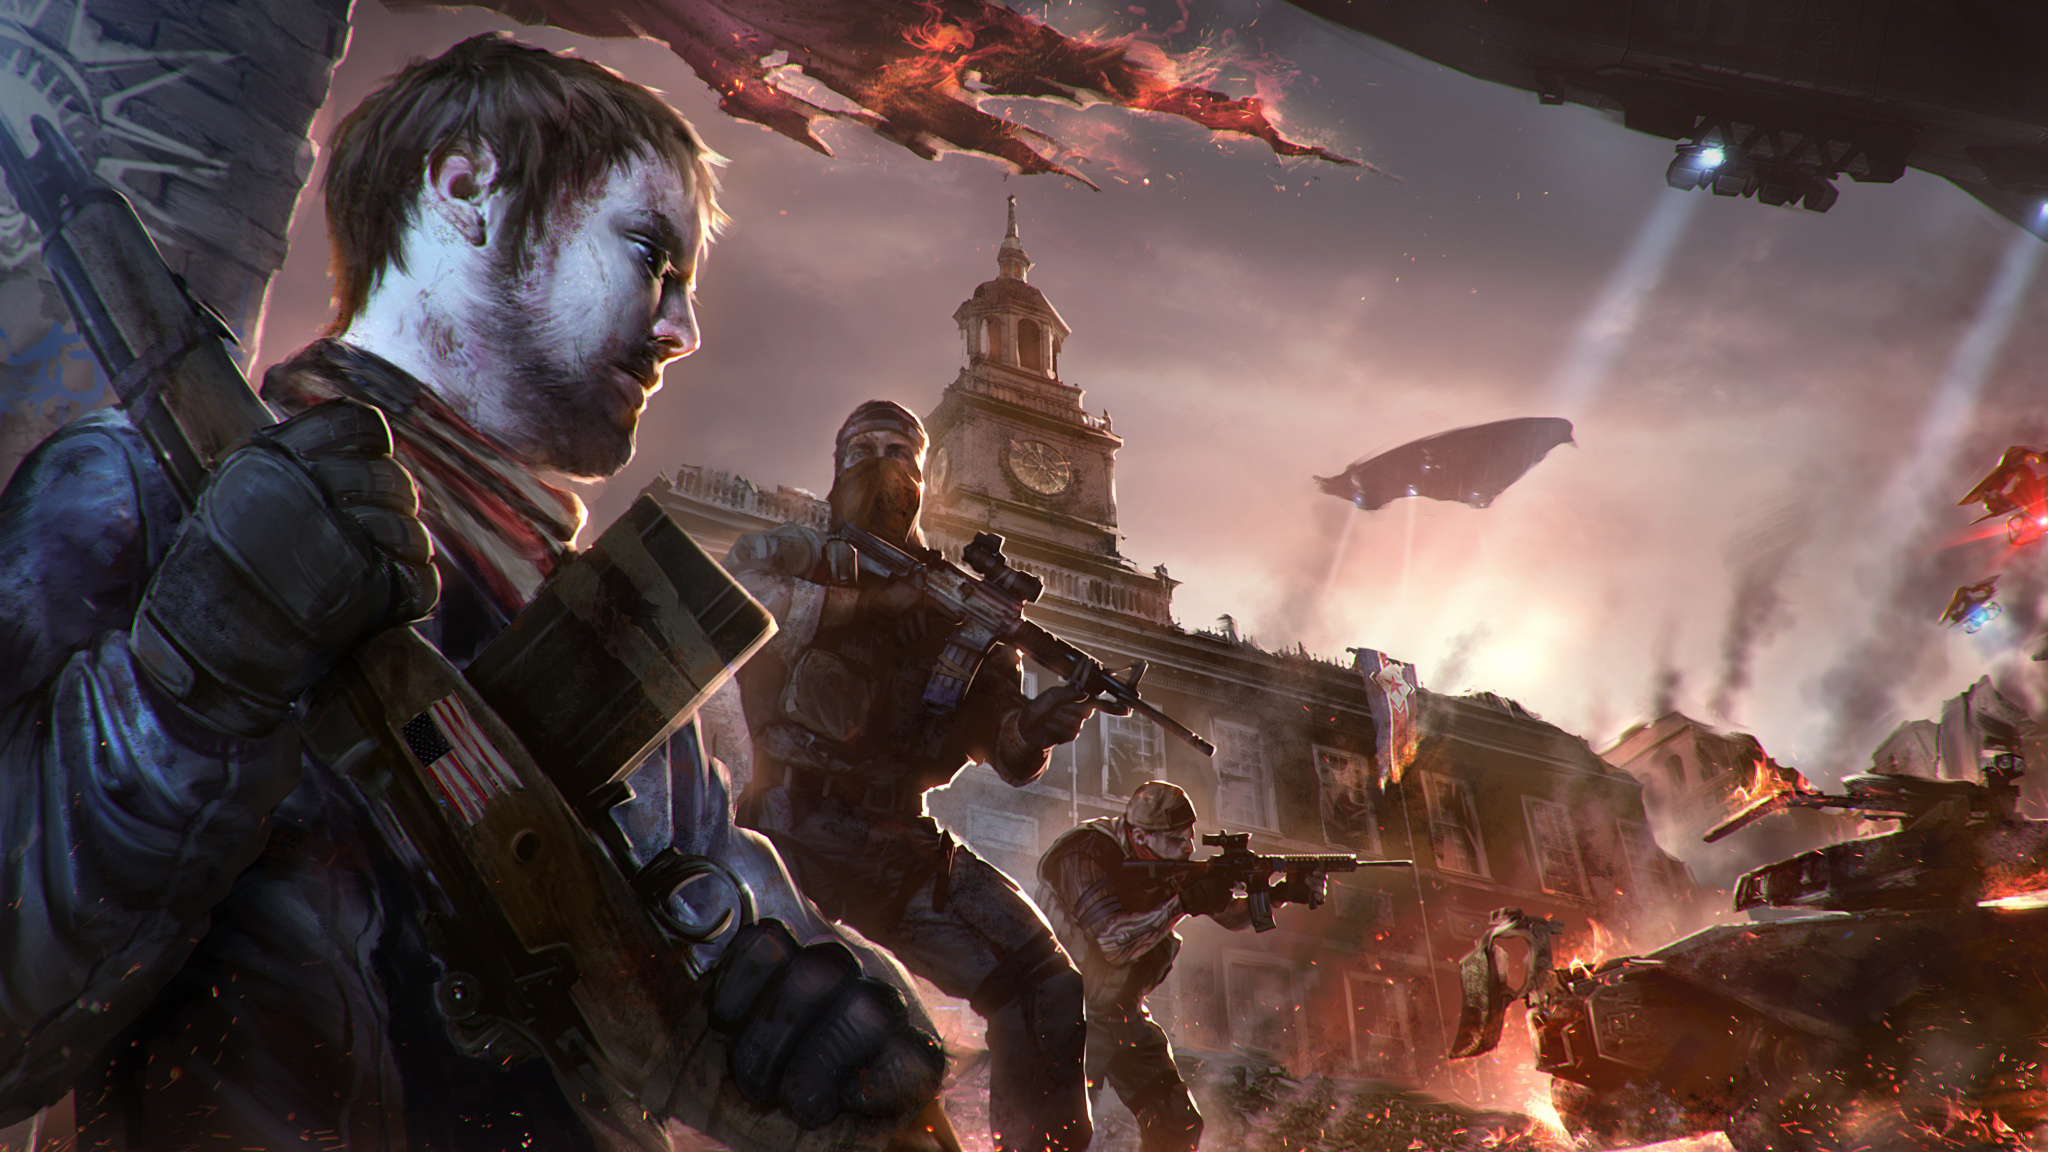 x wallpaper art homefront the revolution video game with homefront download.